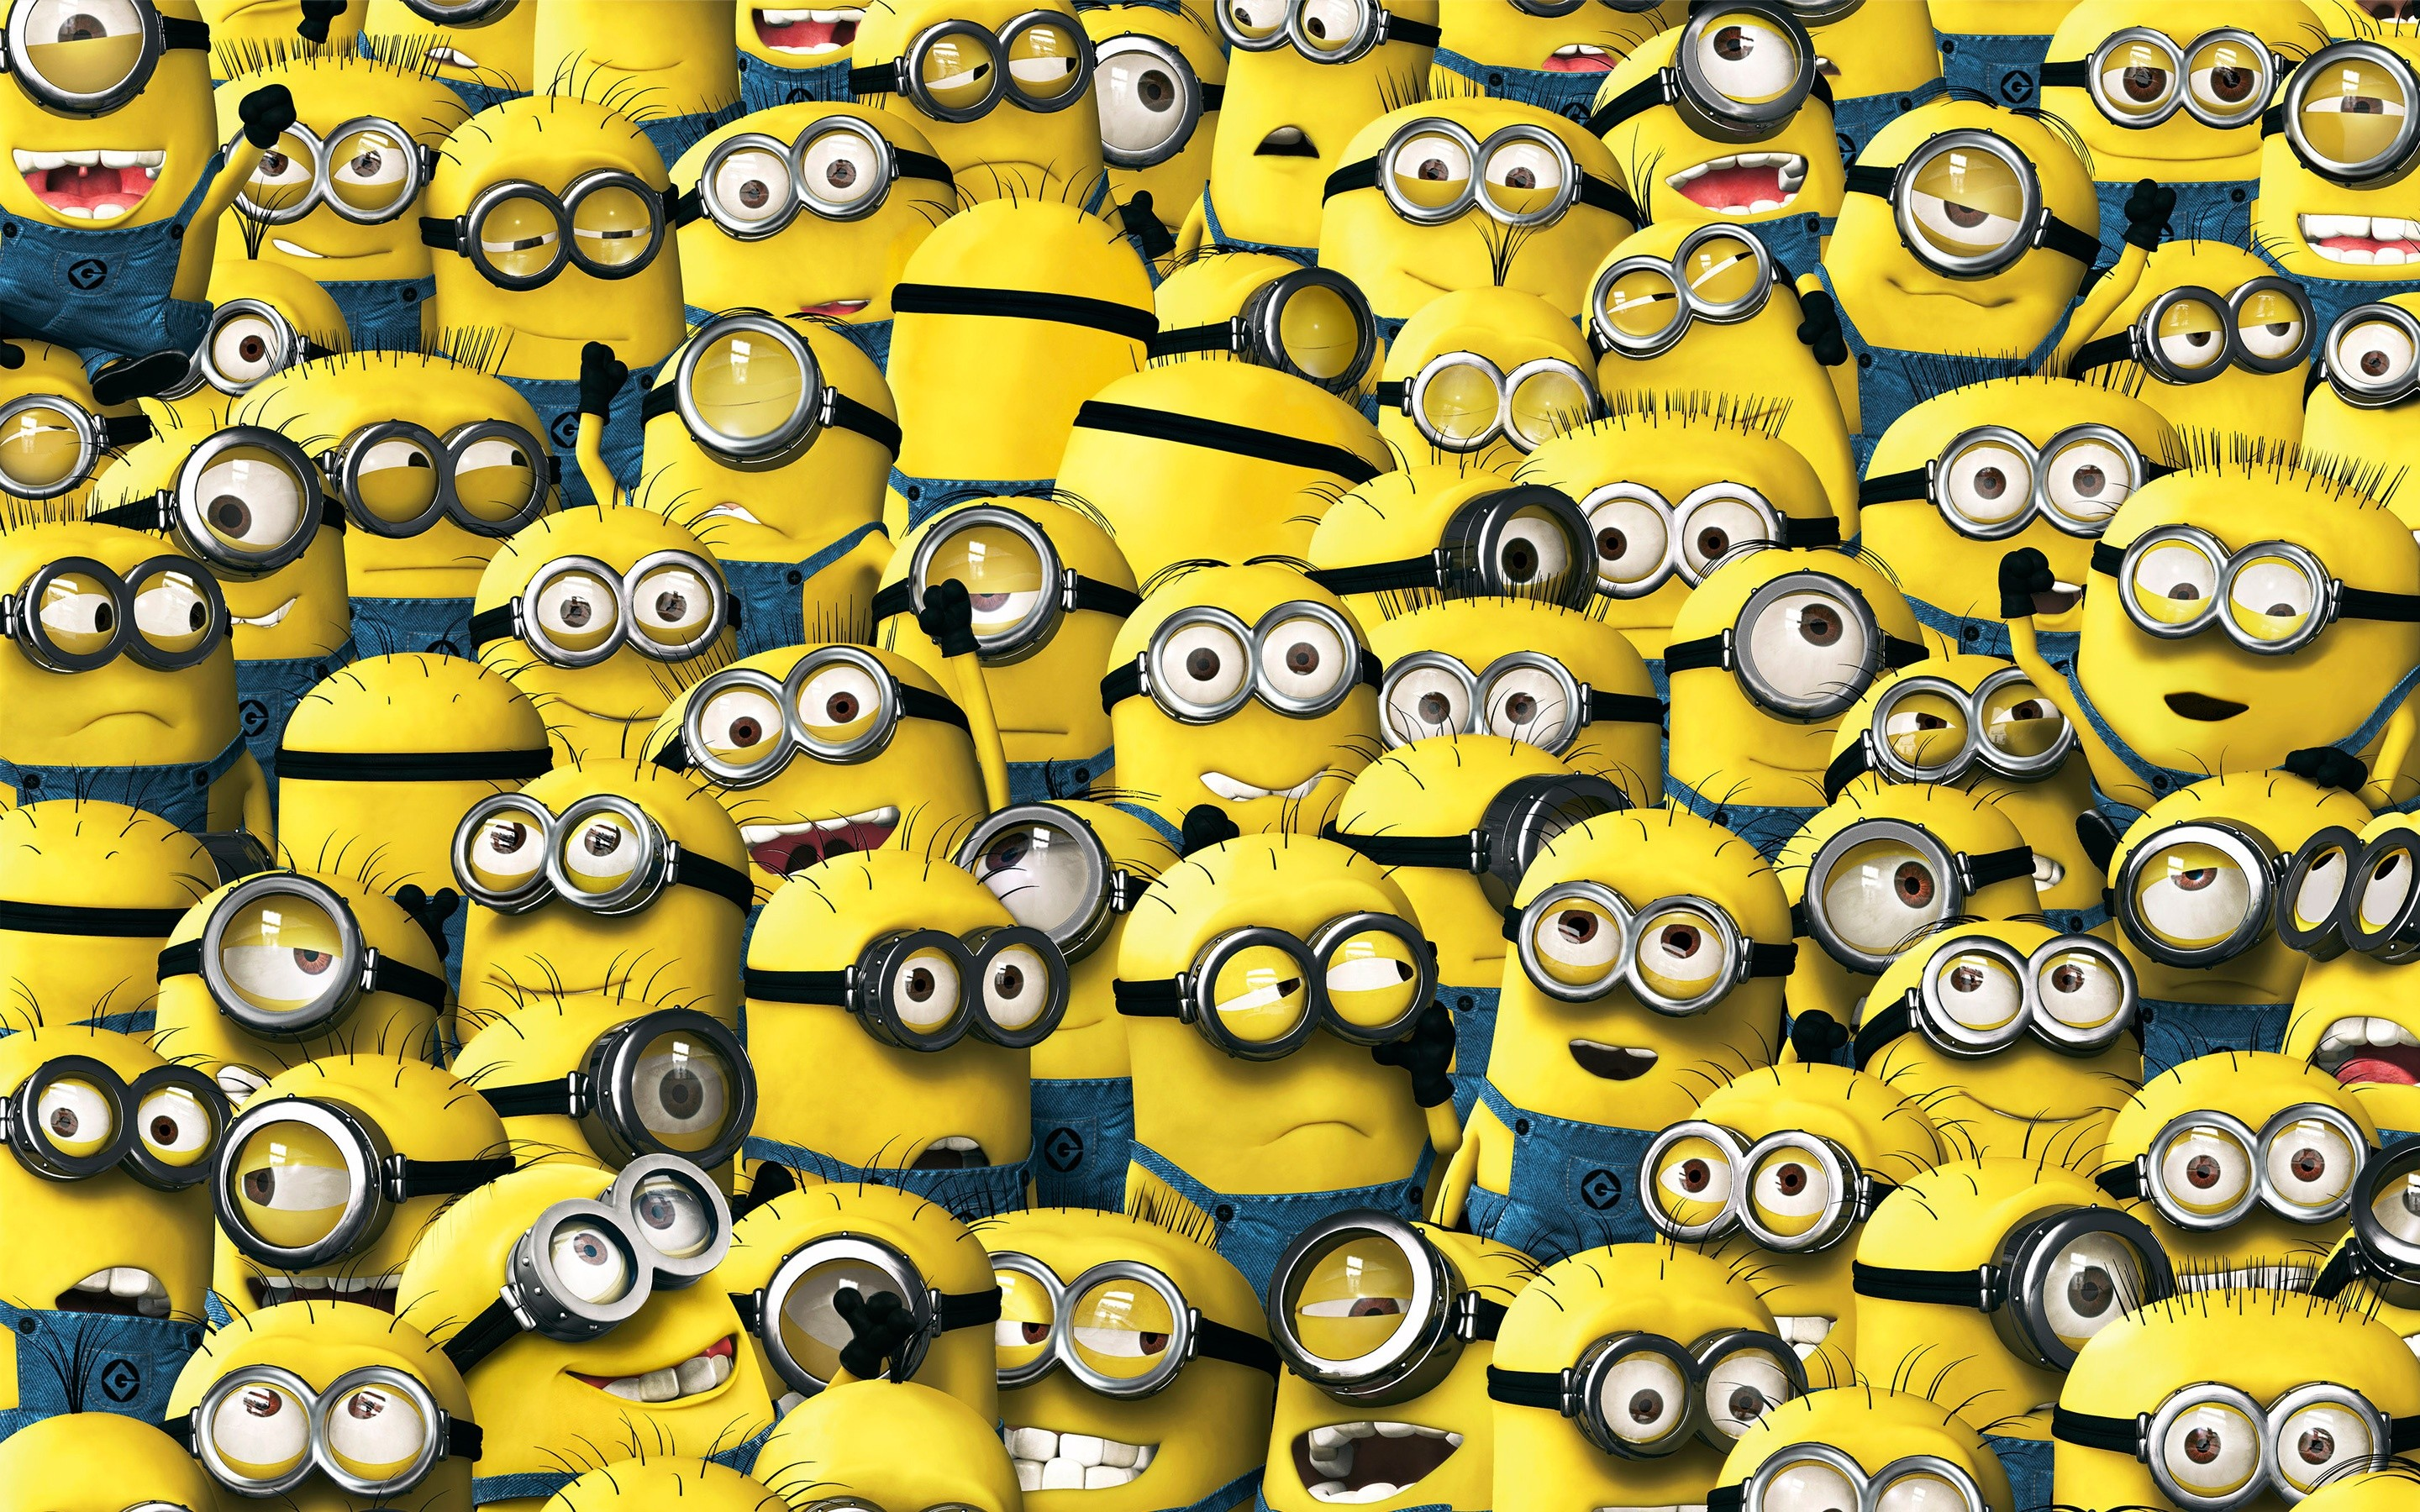 2880x1800 Minions Wallpapers Download Despicable